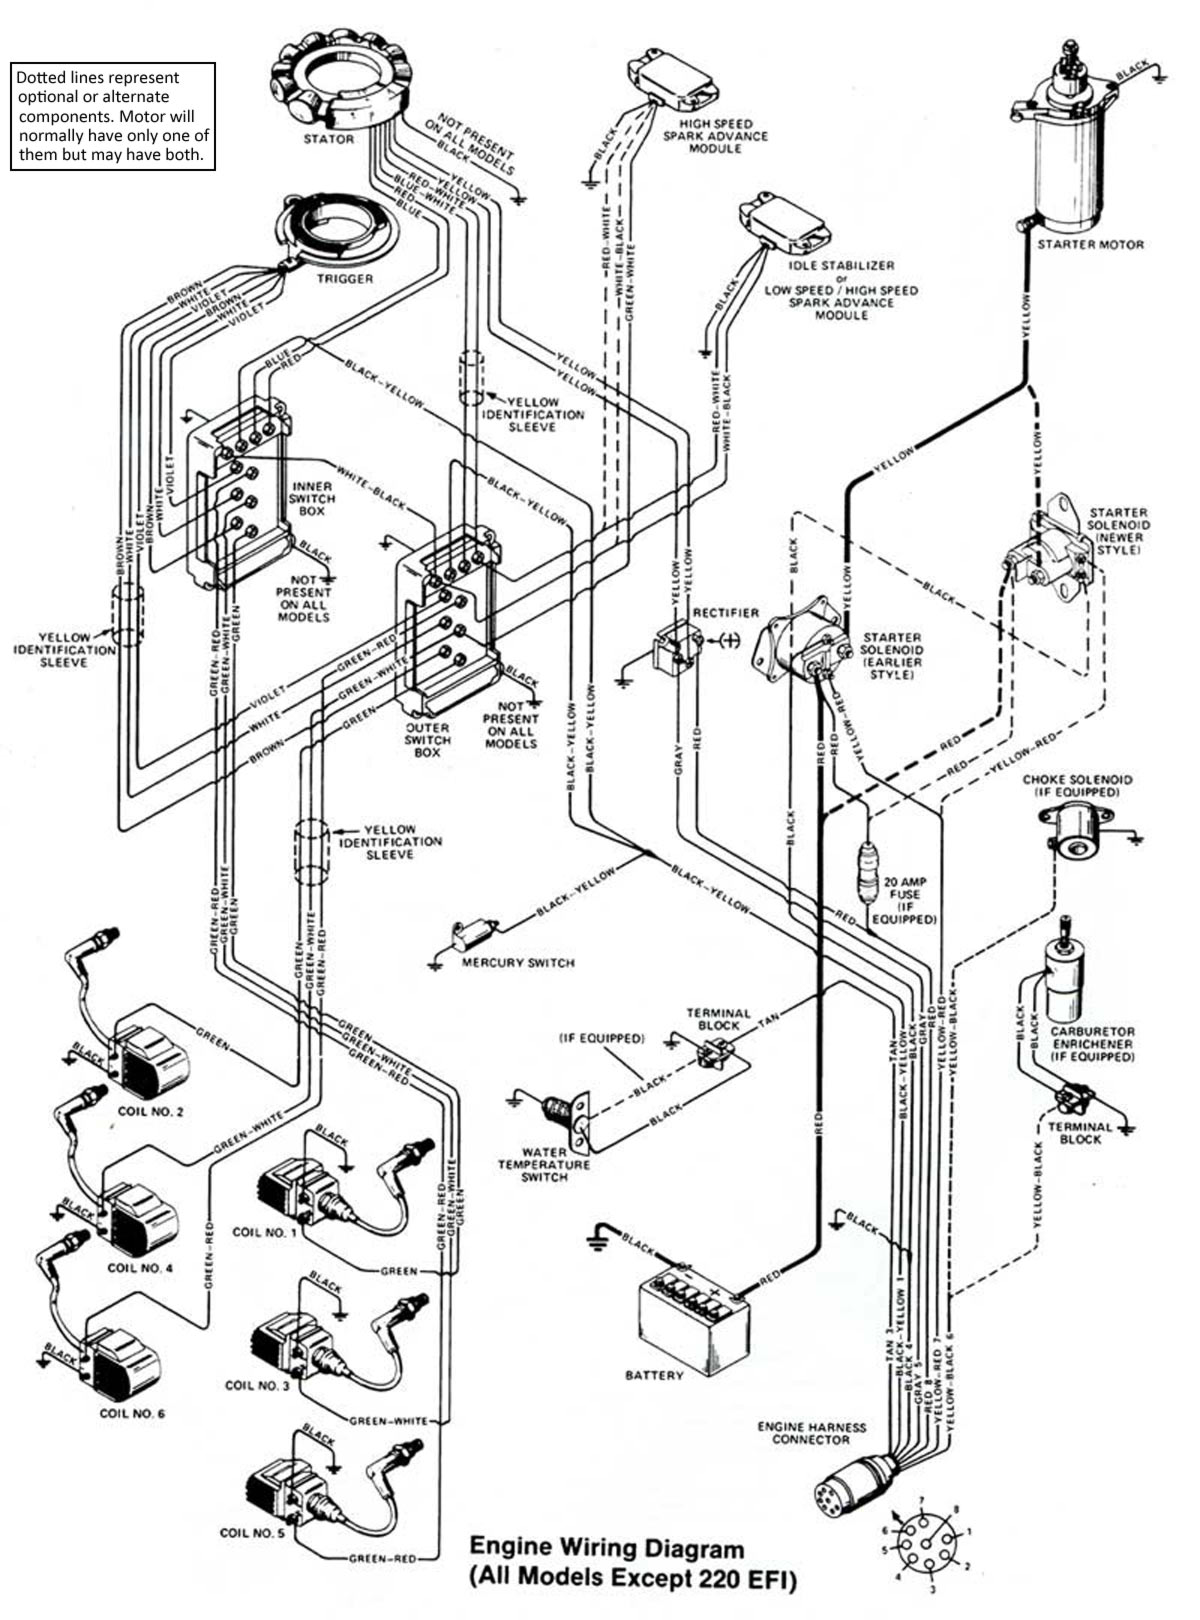 Mercury Wiring Diagrams Change Your Idea With Diagram Design Outboard Boat Mastertech Marin Rh Maxrules Com Motor 1969